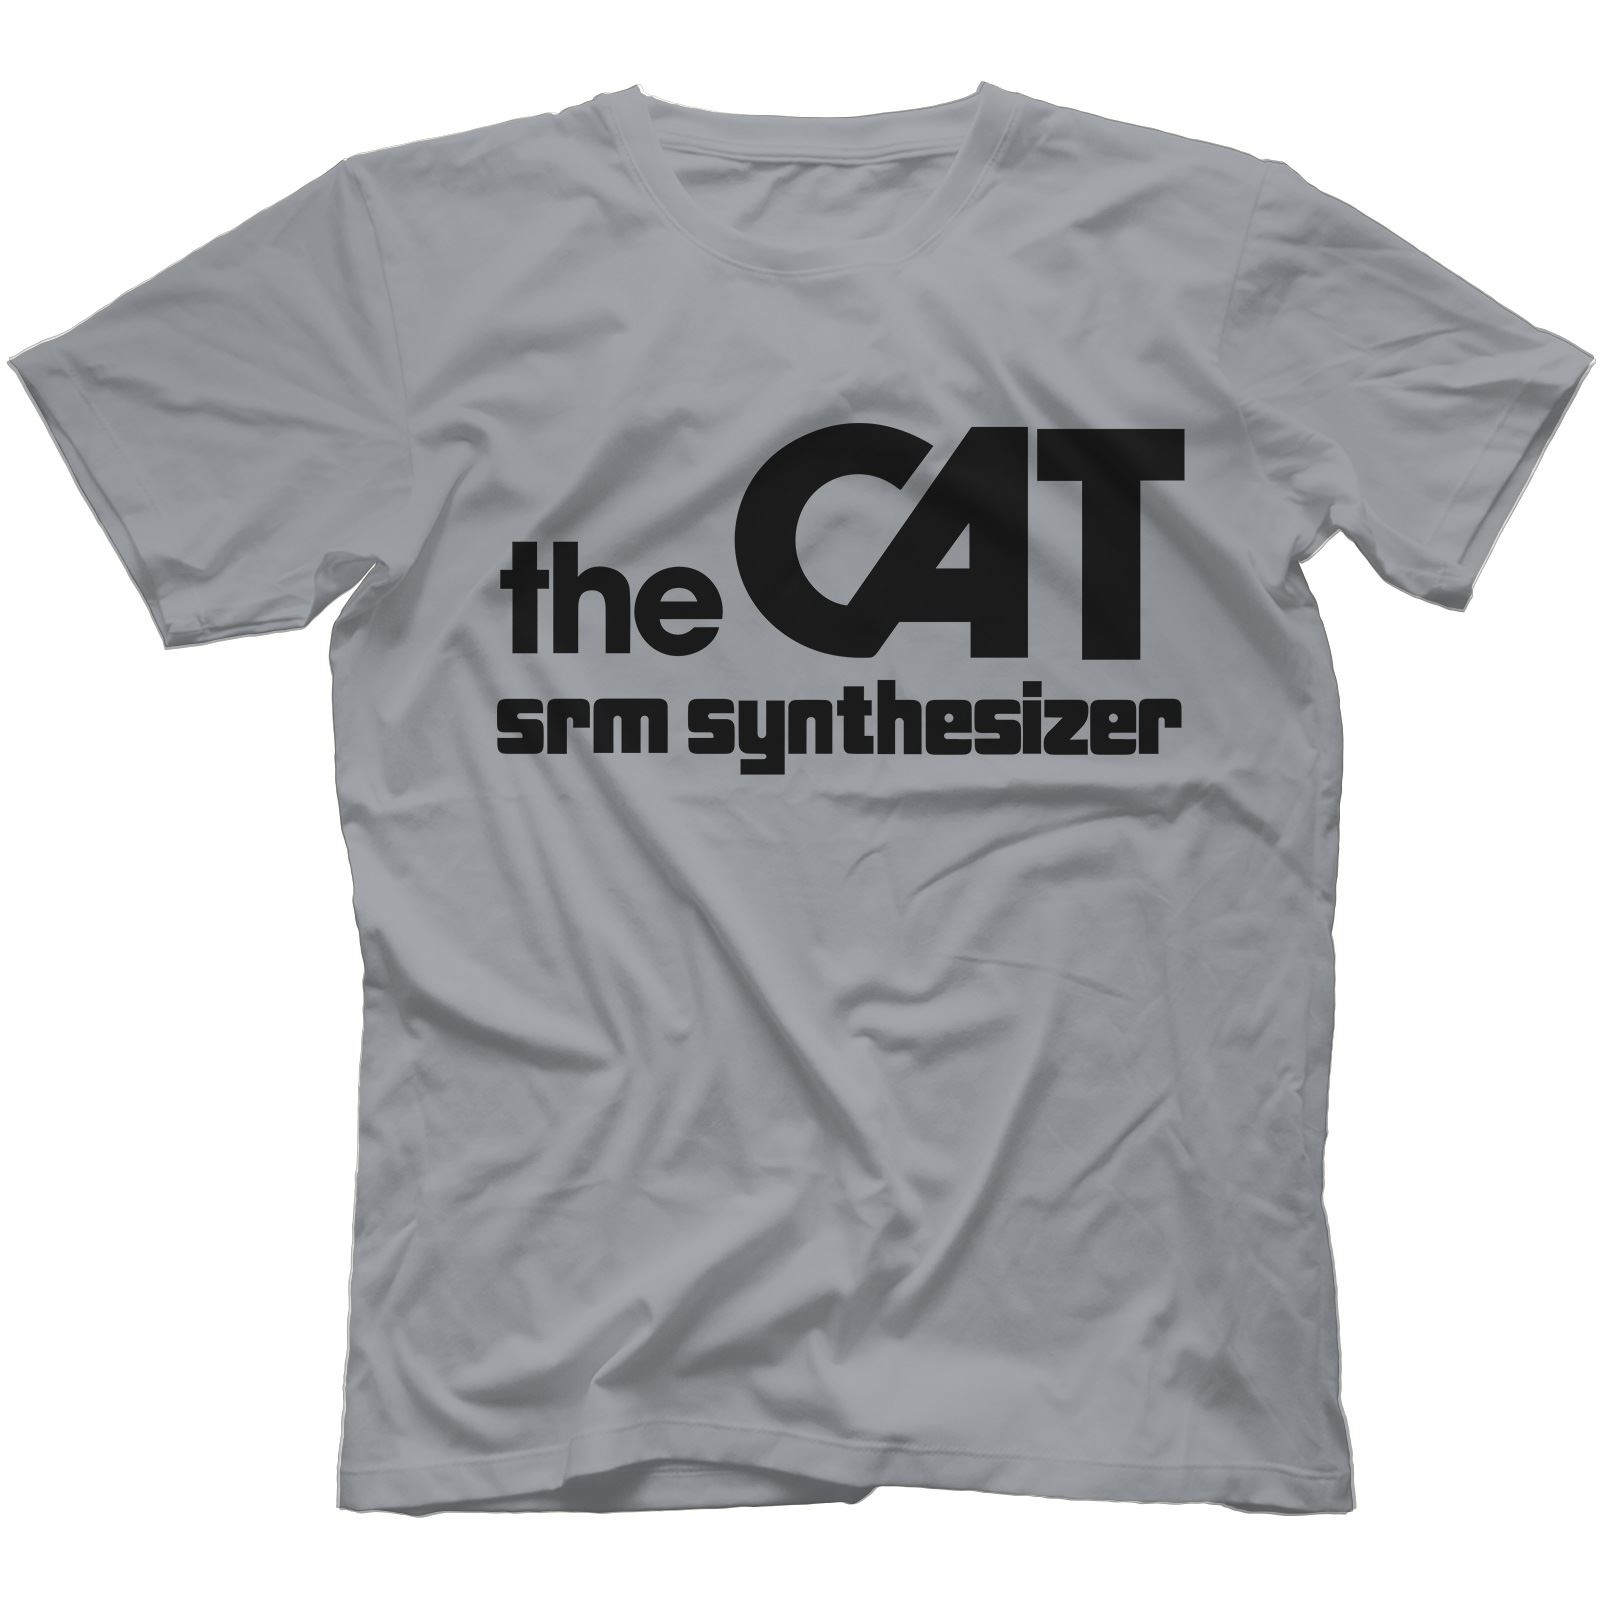 The-Cat-SRM-Synthesiser-T-Shirt-100-Cotton-Retro-Analog-Arp-Odyssey Indexbild 29